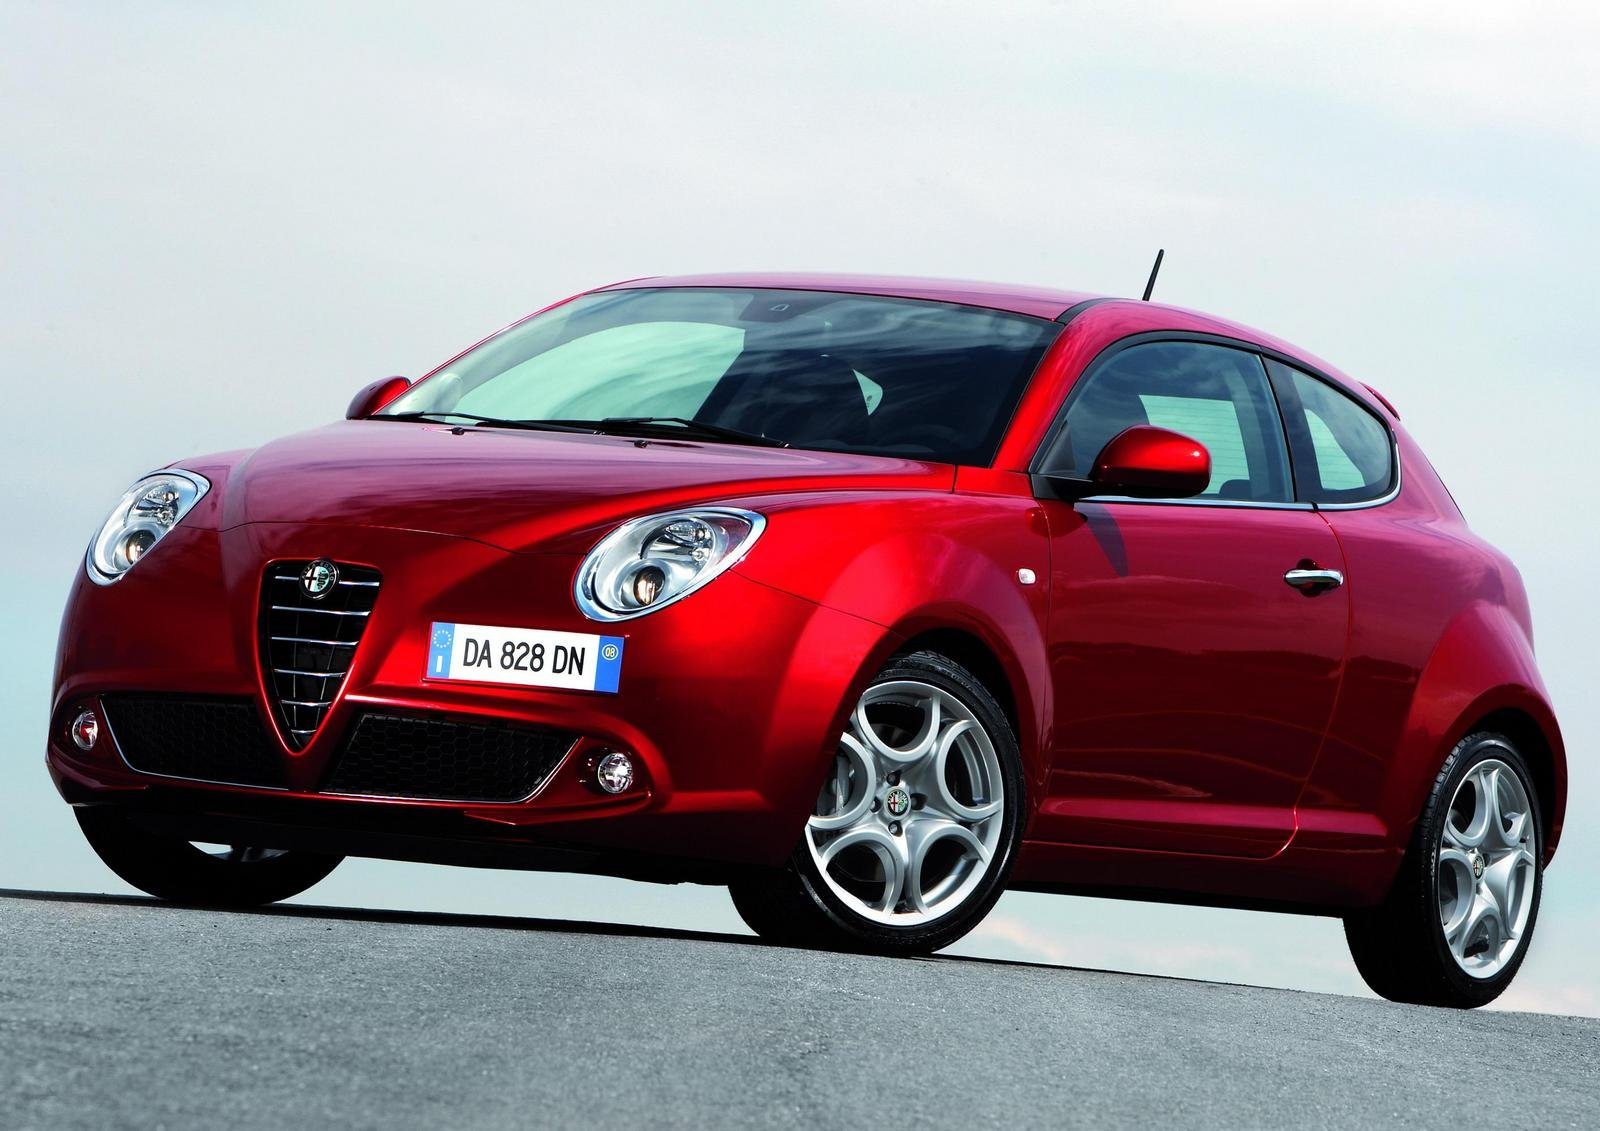 2009 Alfa Romeo MiTo Wallpaper